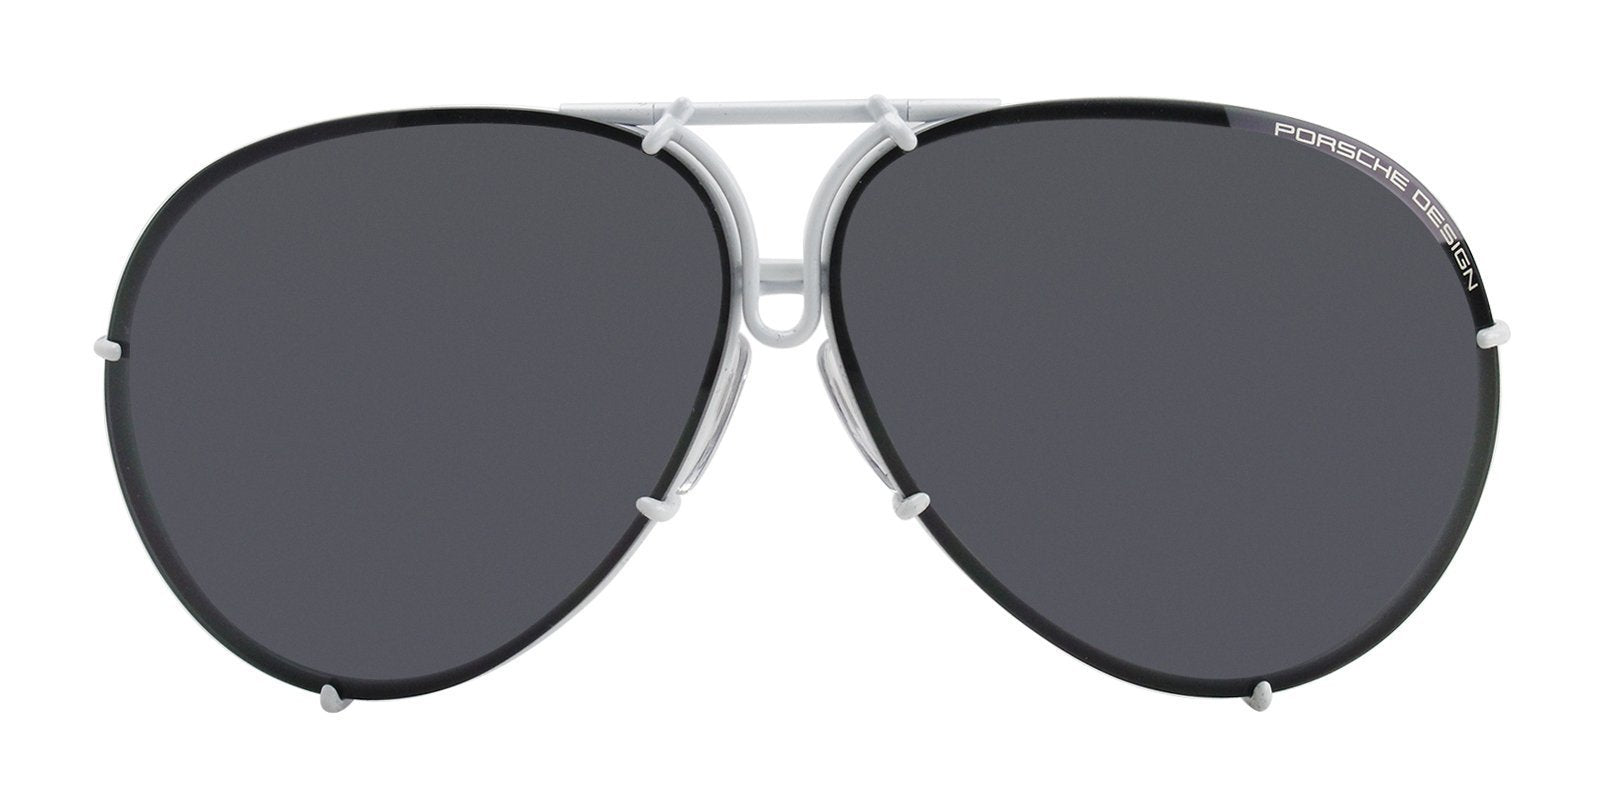 Porsche Design P8478 White / Black Lens Sunglasses-Sunglasses-Designer Eyes